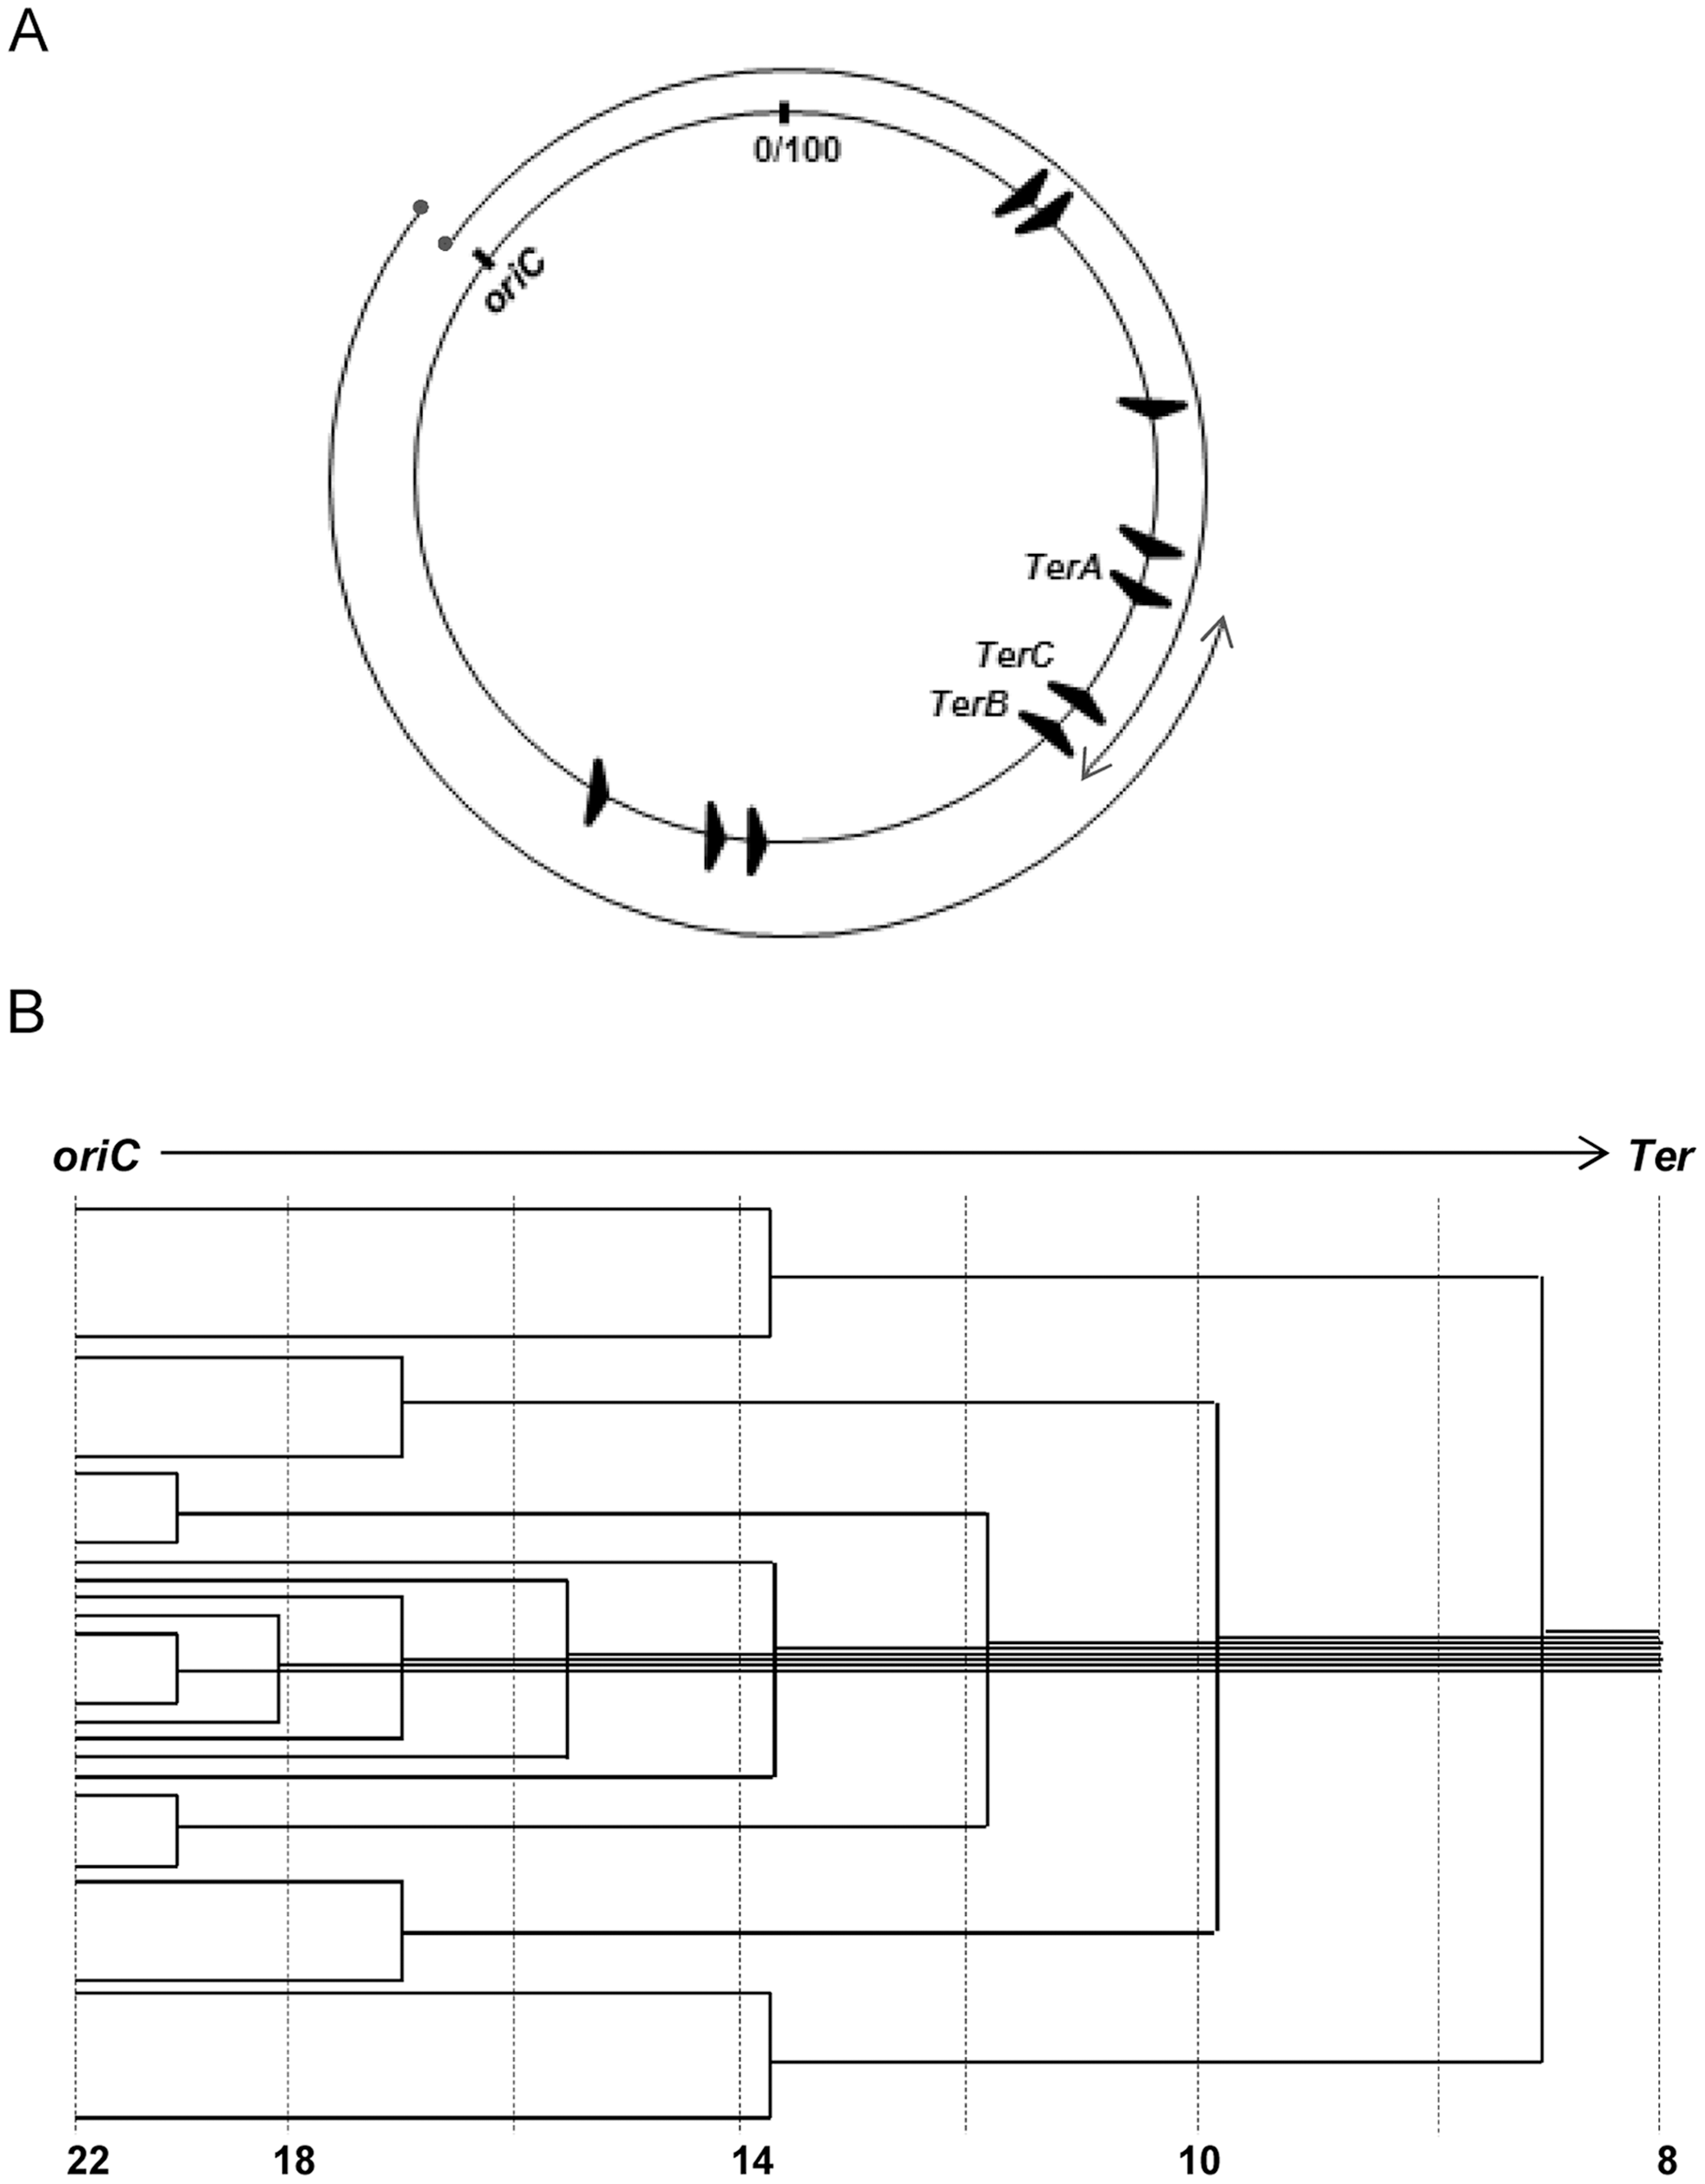 Features of <i>oriC</i>-initiated replication in <i>E. coli</i>.